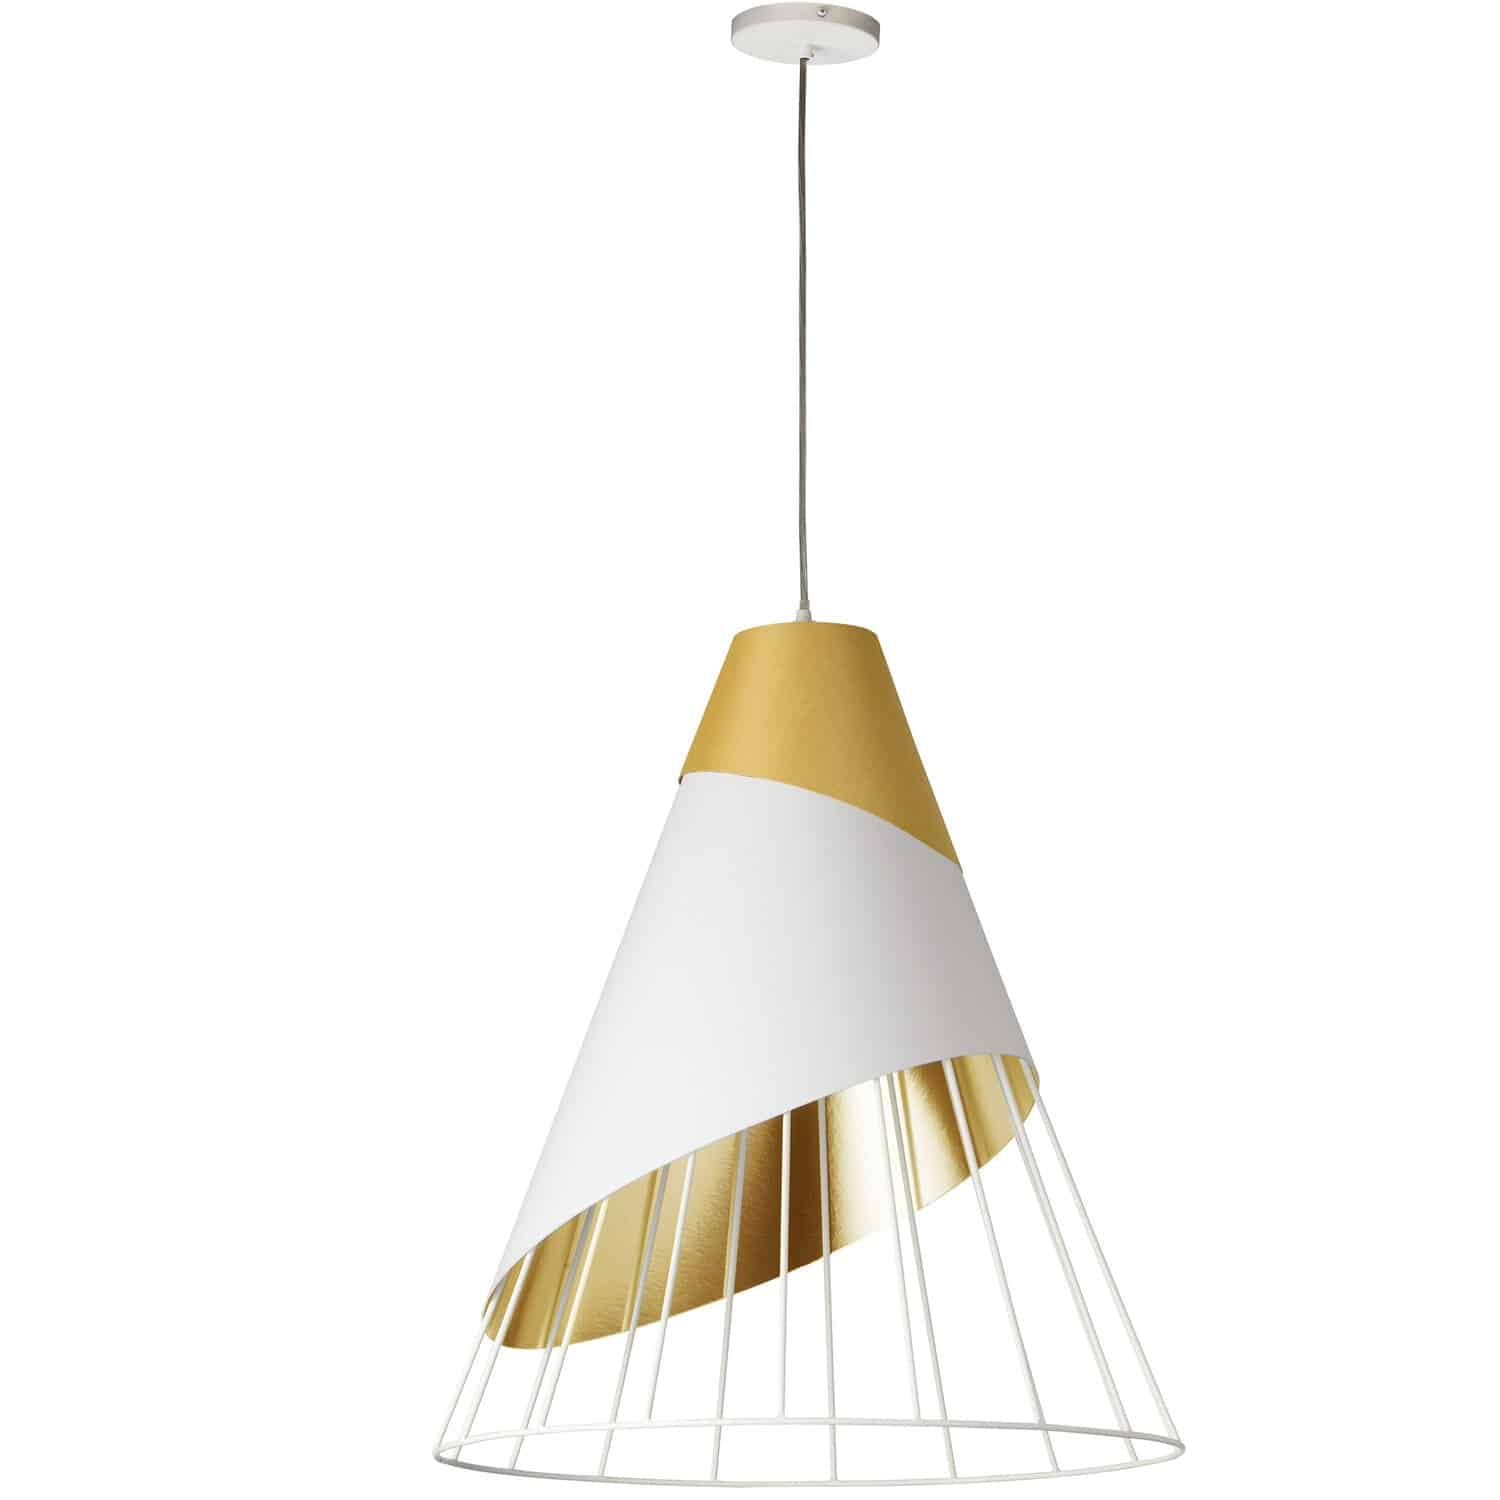 1 Light Gold Pendant with Gold Fabric Cap and White on Gold Hardback Shade